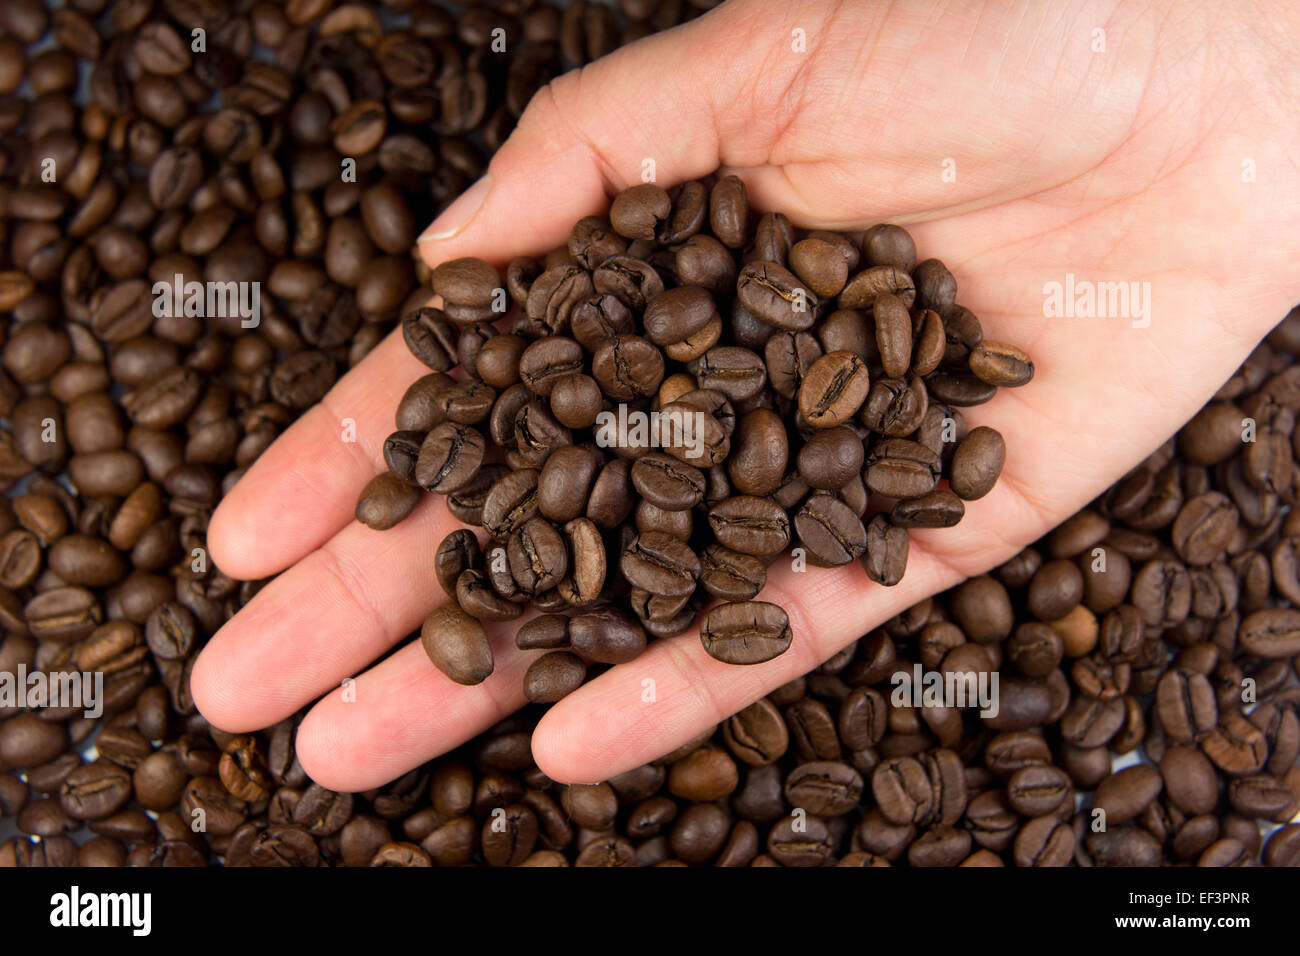 A hand holding a pile of coffee beans. Stock Photo